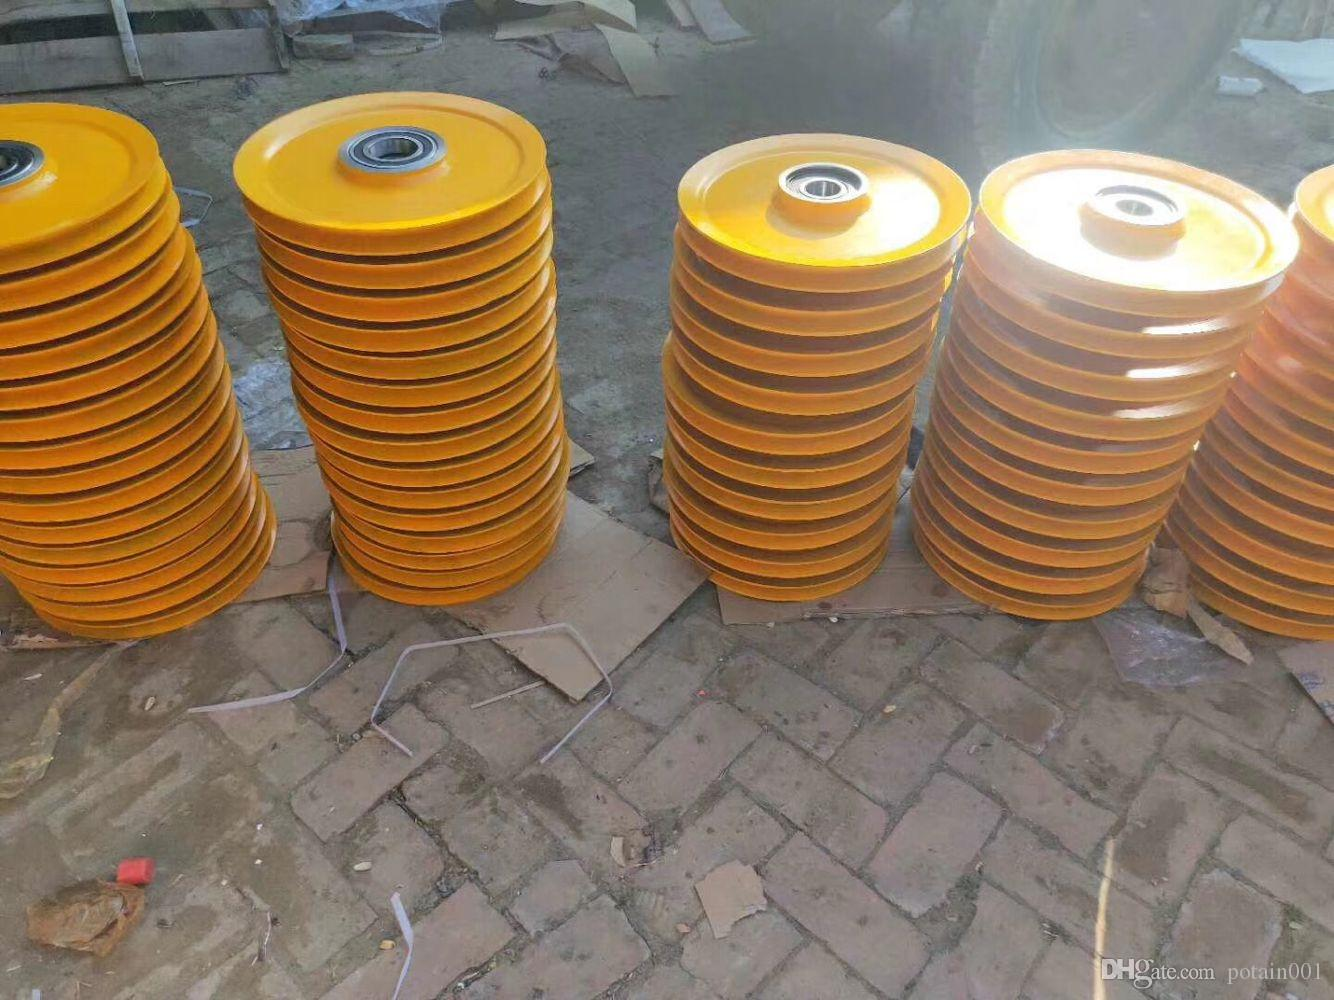 2020 Potain Tower Crane Mc Md Range Spare Parts Mc125 Mc205 Main Rolling Wire Rope Trolley Iron And Lylon Pulley Including Bearing Sales Online From Potain001 40 21 Dhgate Com